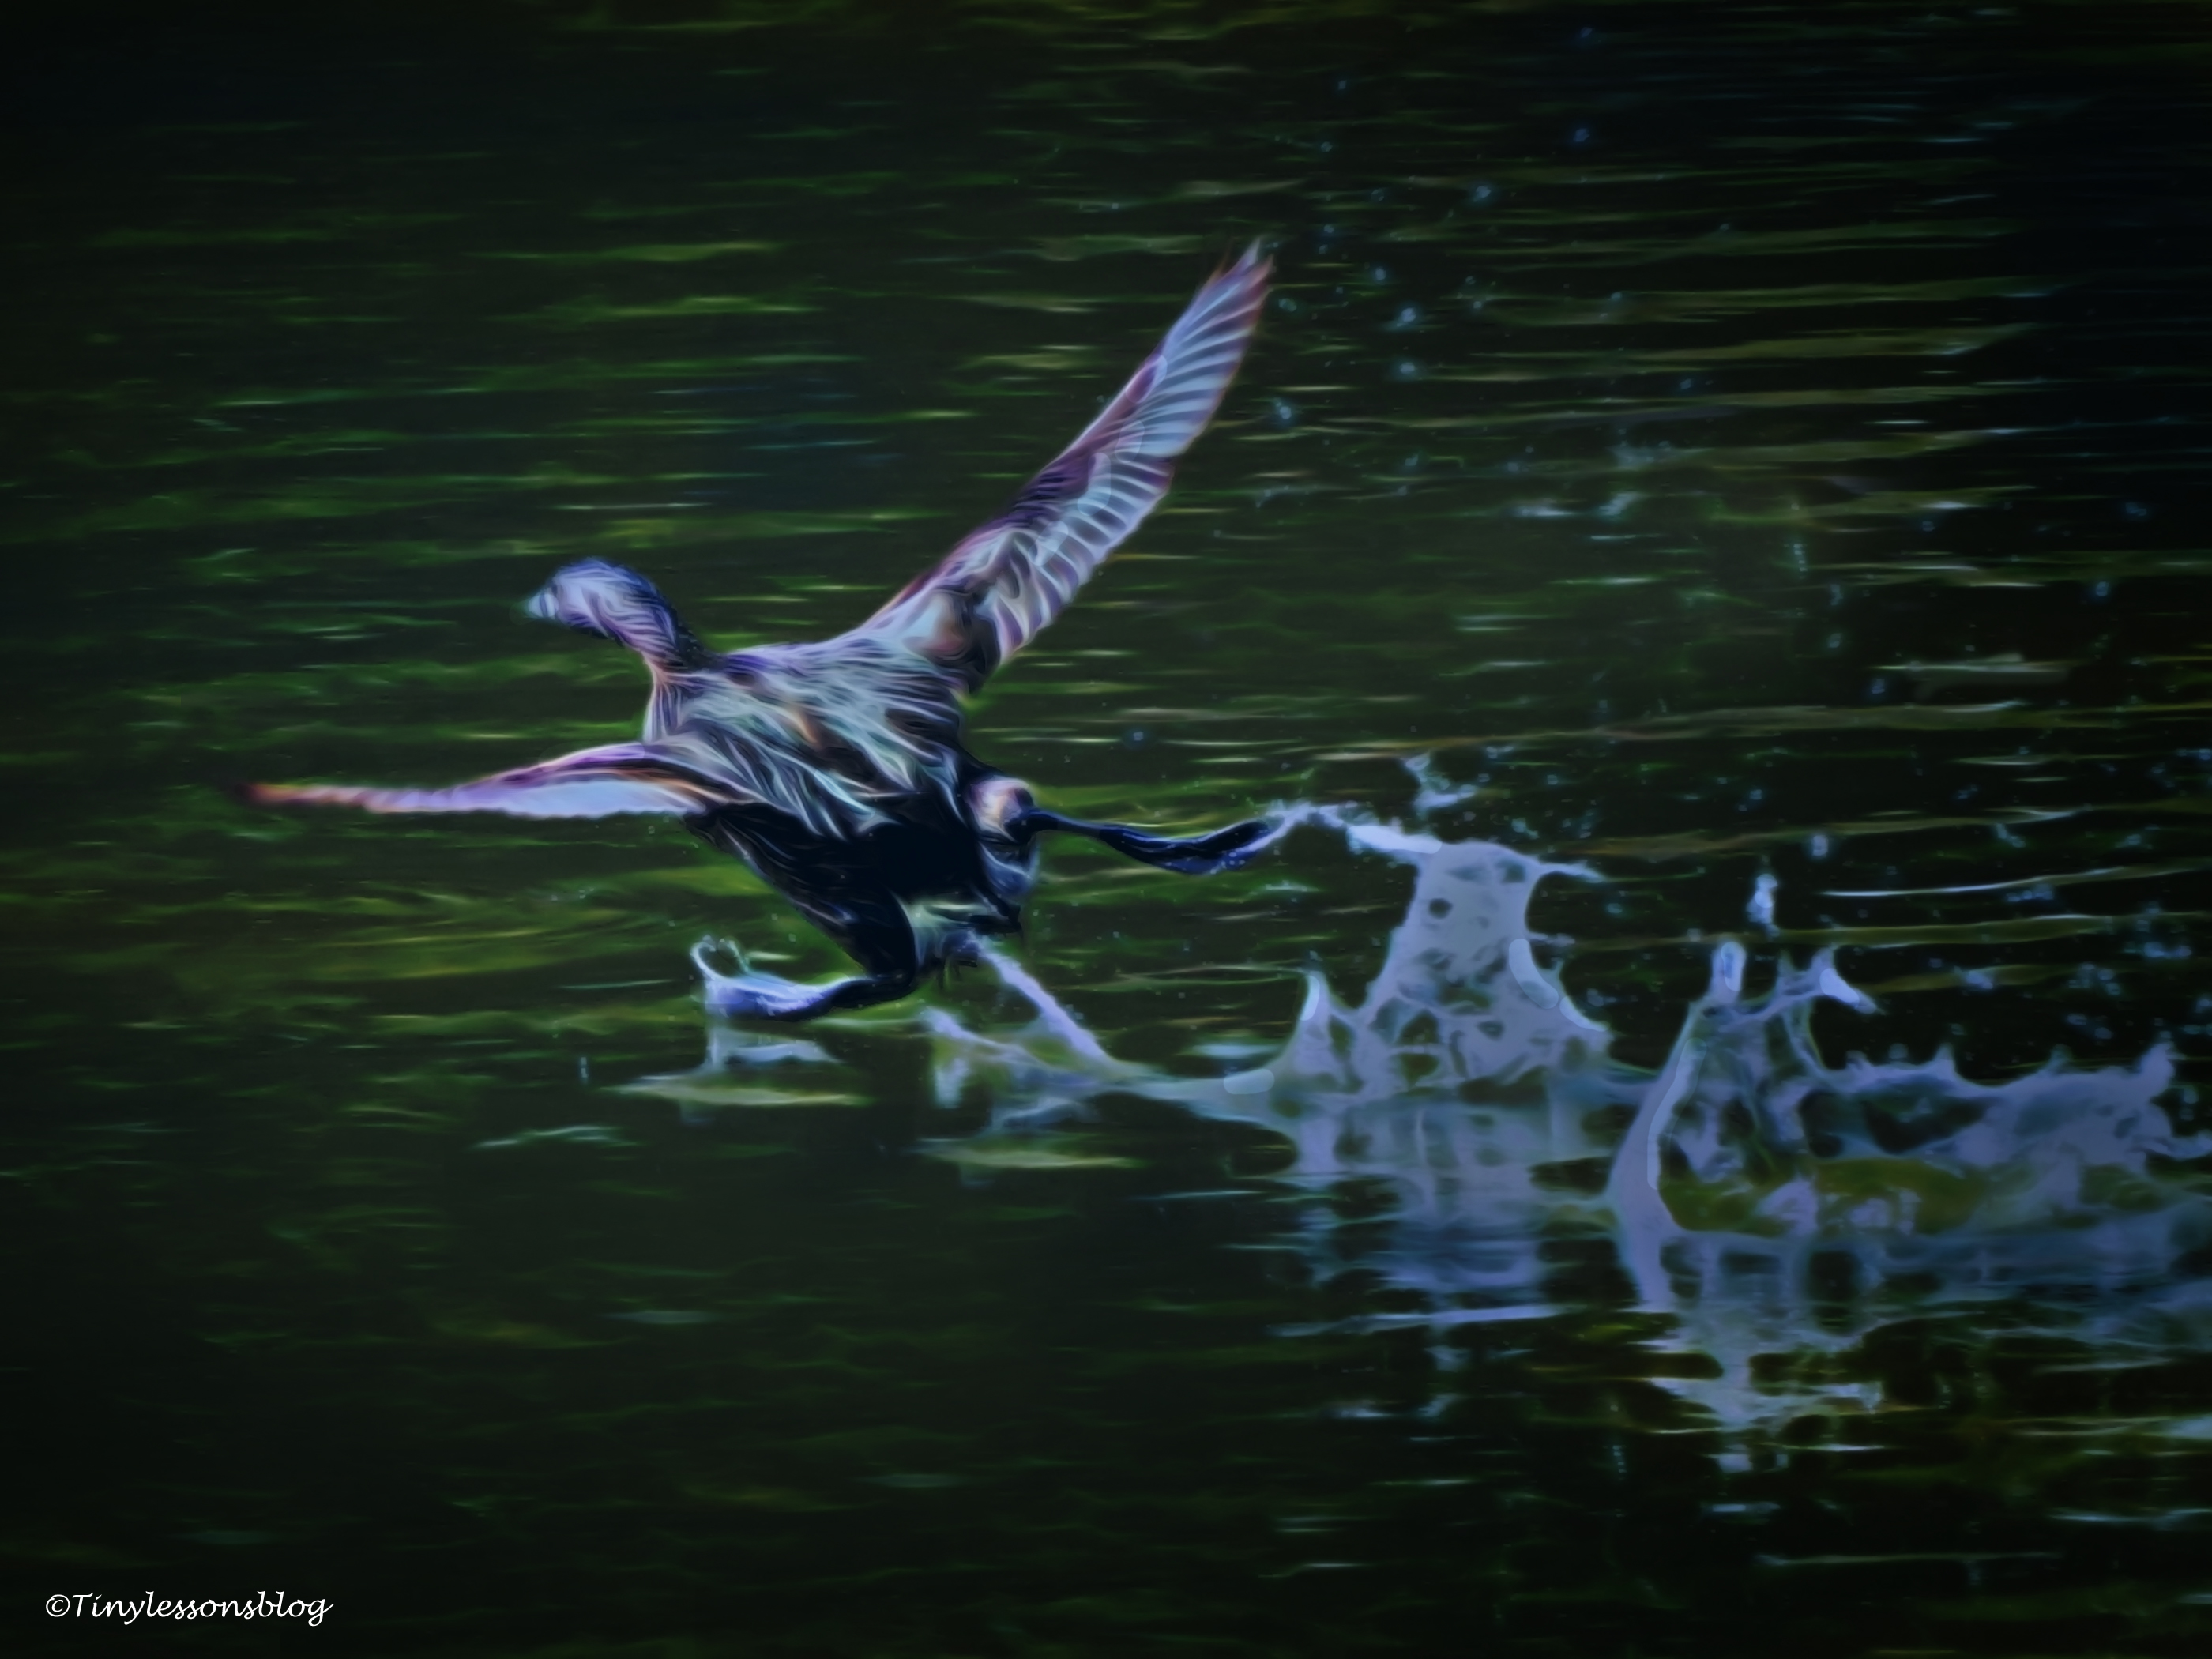 mottled-duck-run-on-water-halloween-ud88